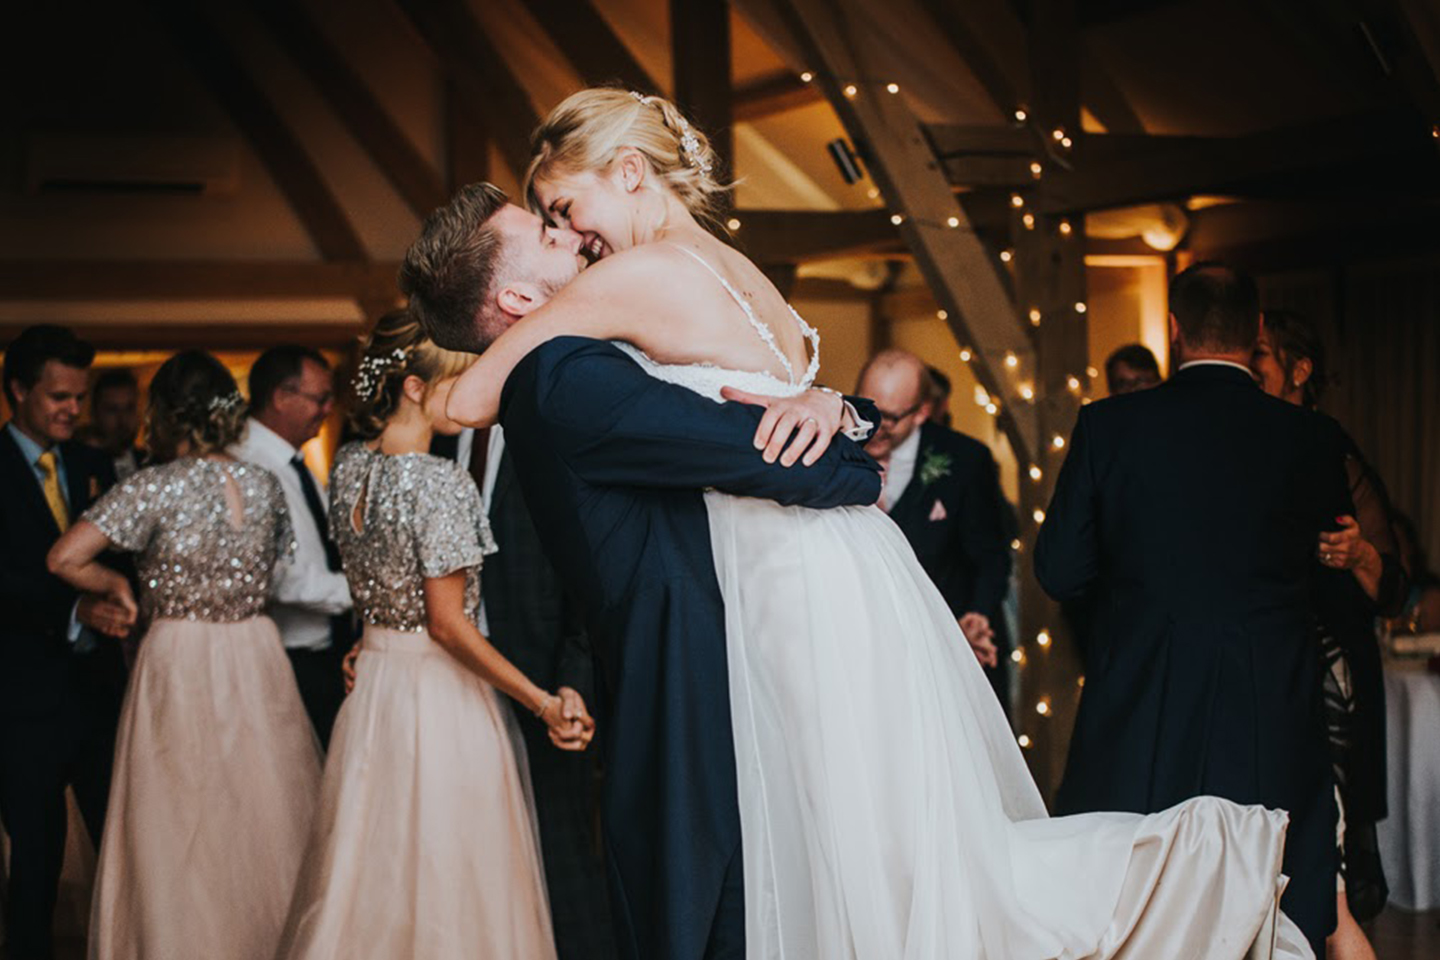 A bride and groom perform their first dance in front of guests at Bassmead Manor Barns